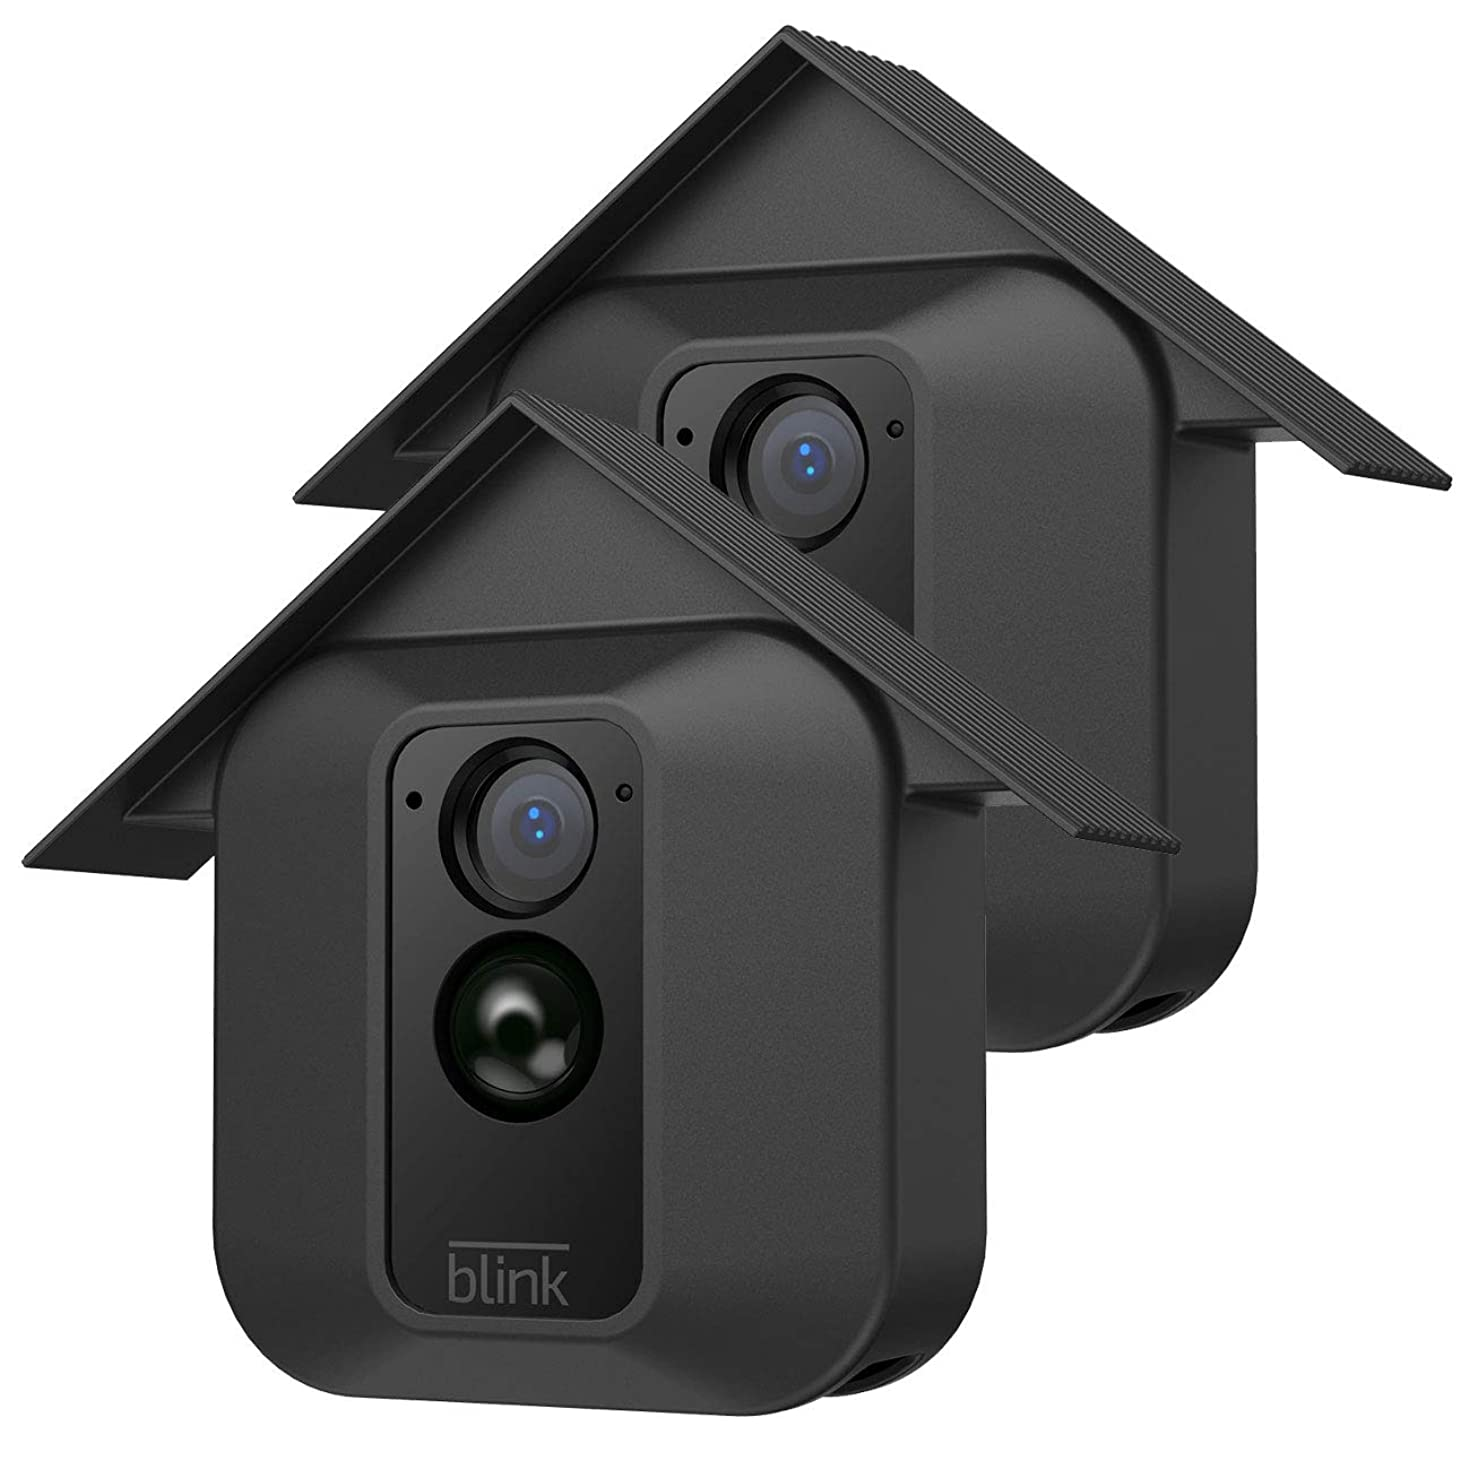 HOLACA Silicone Skin for Blink Home Security- Silicon Case for Blink XT Blink XT2 Outdoor Camera - Anti-Scratch Protective Cover - Extra Protection (2 Pack, Black)